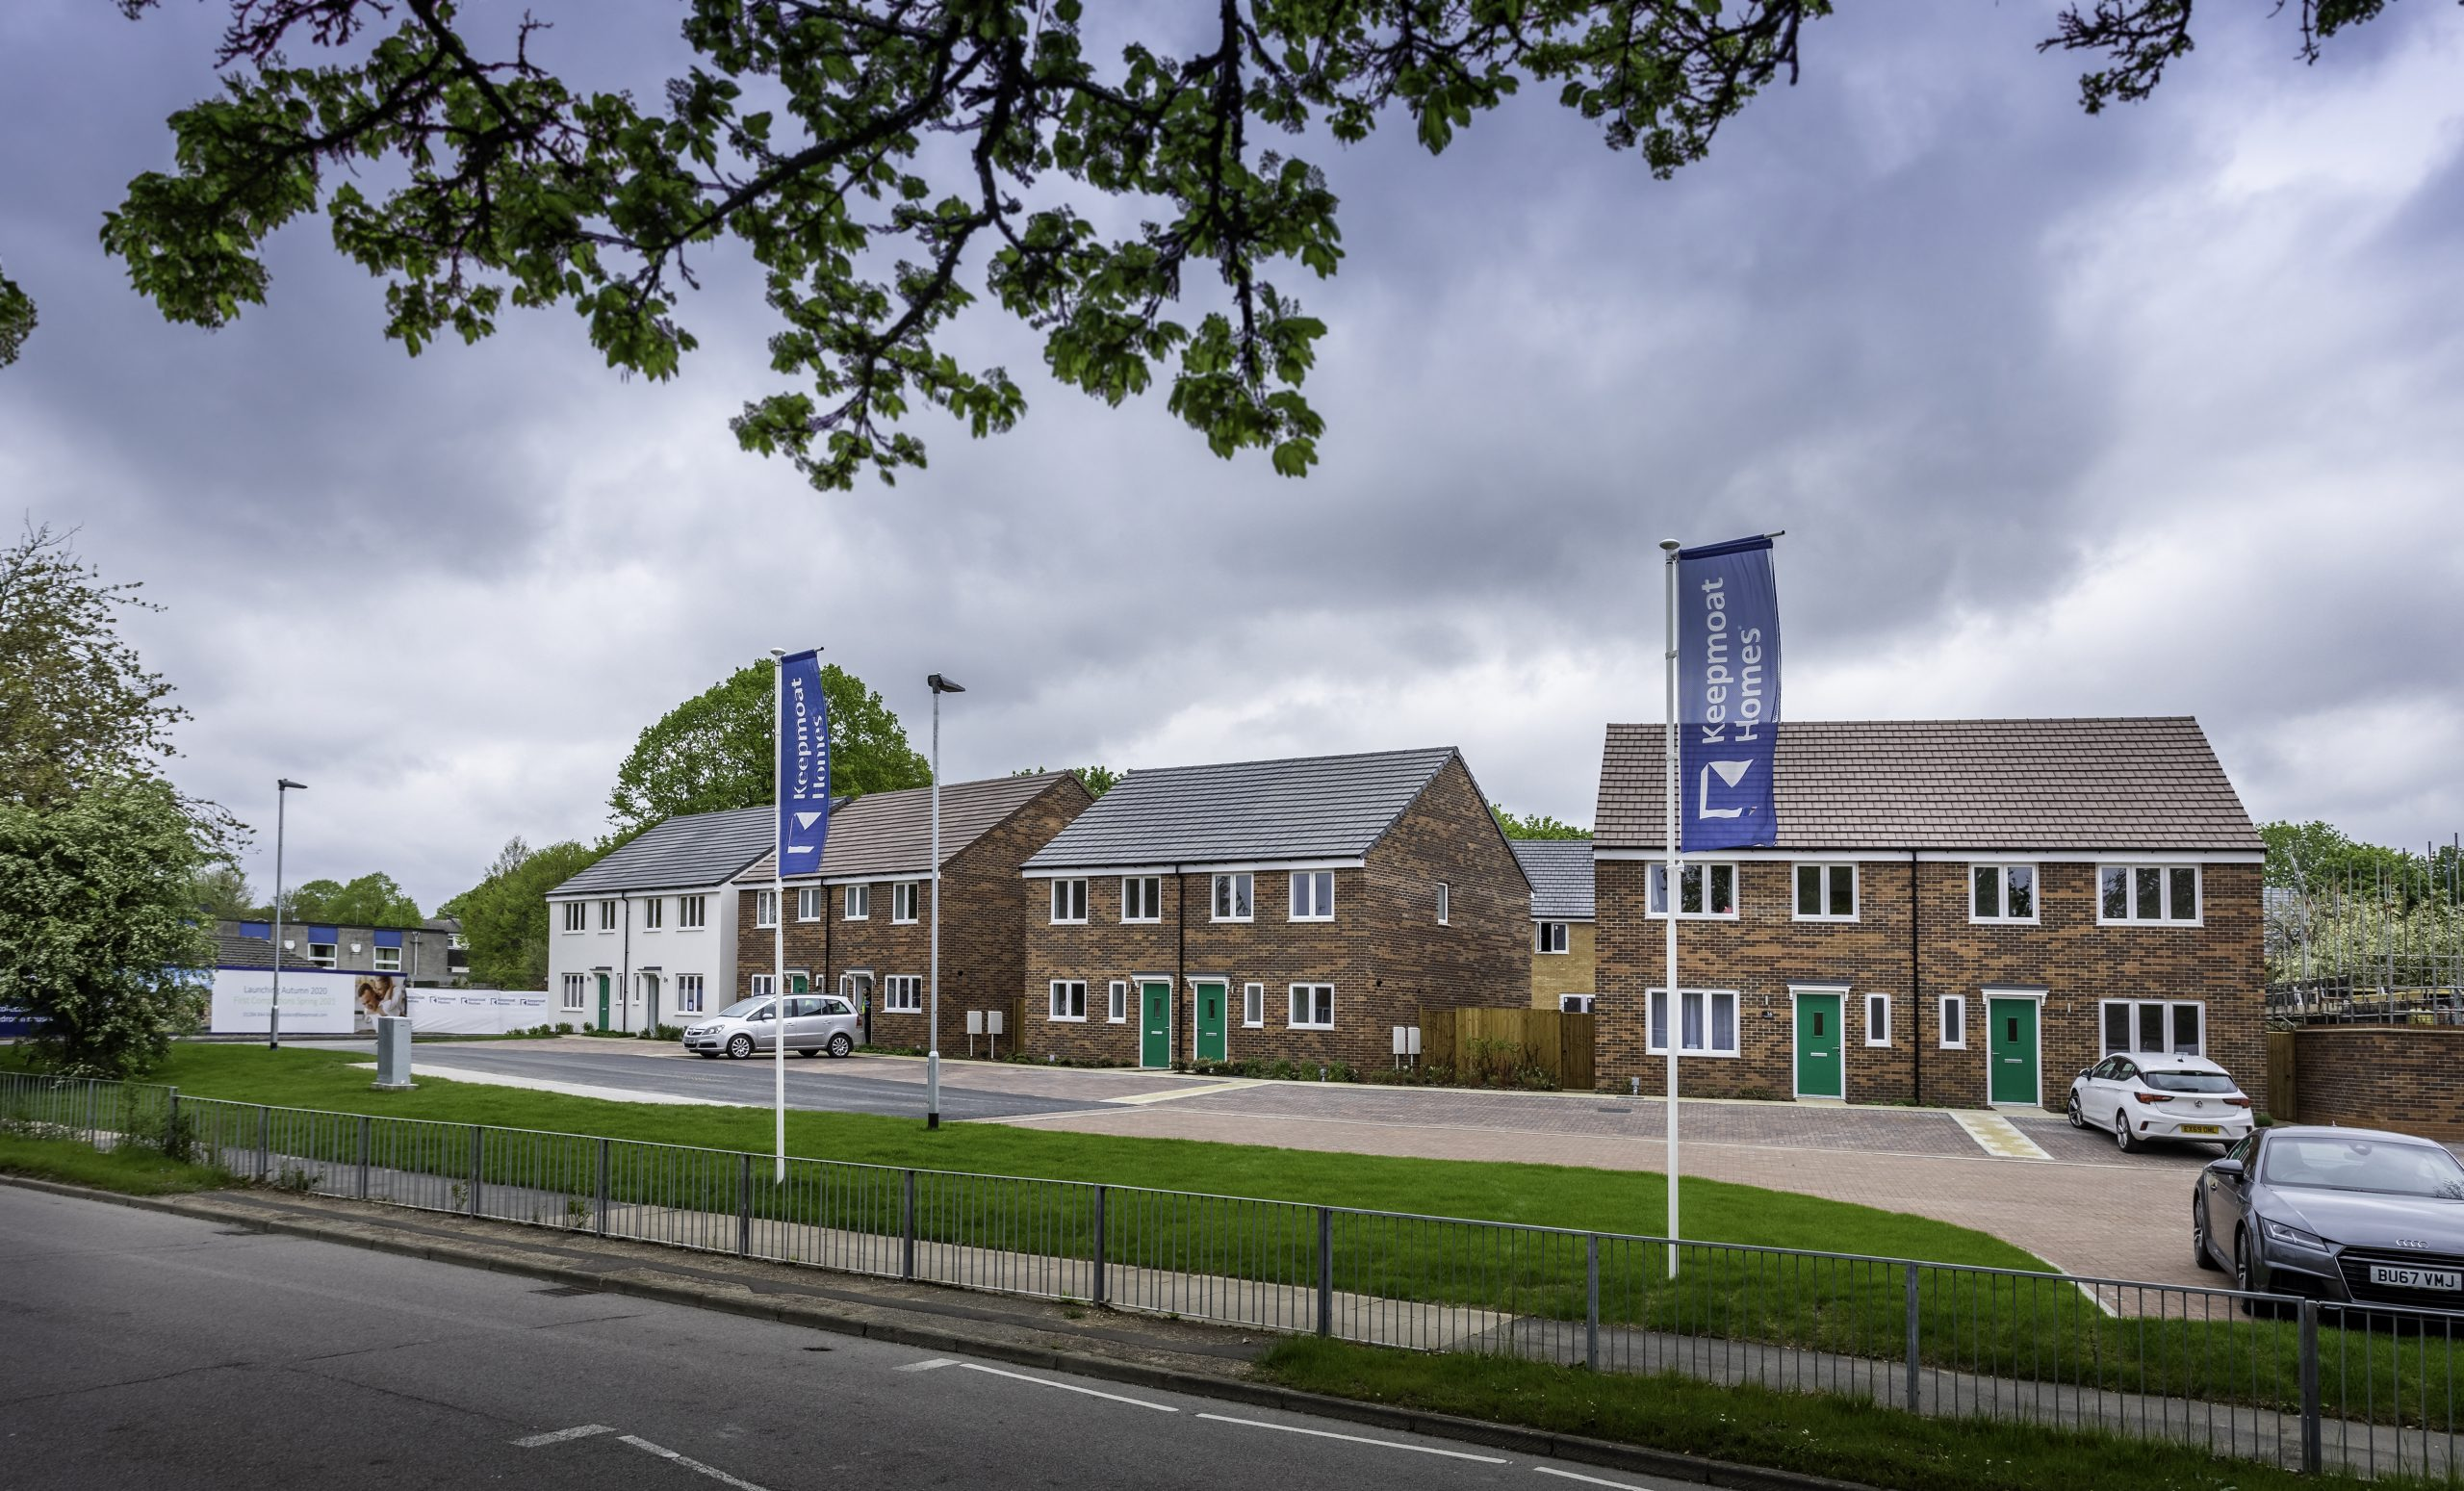 Pupils at Howard Community Academy Name New Roads